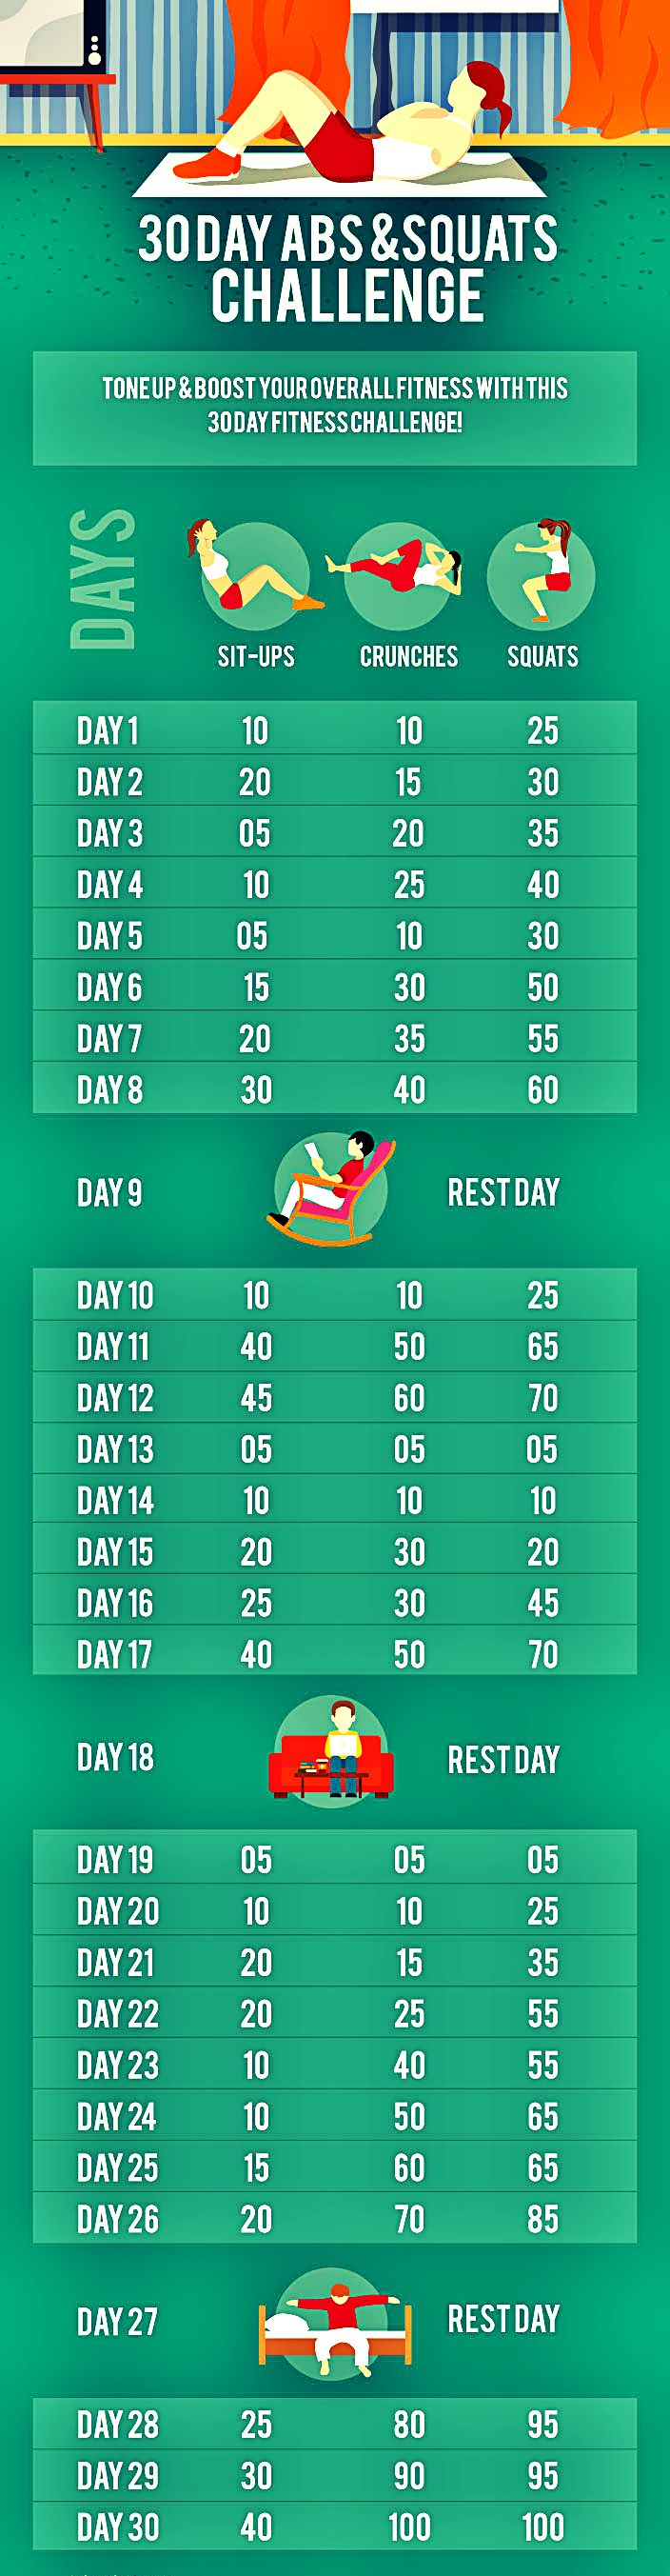 30 day abs & squats challenge